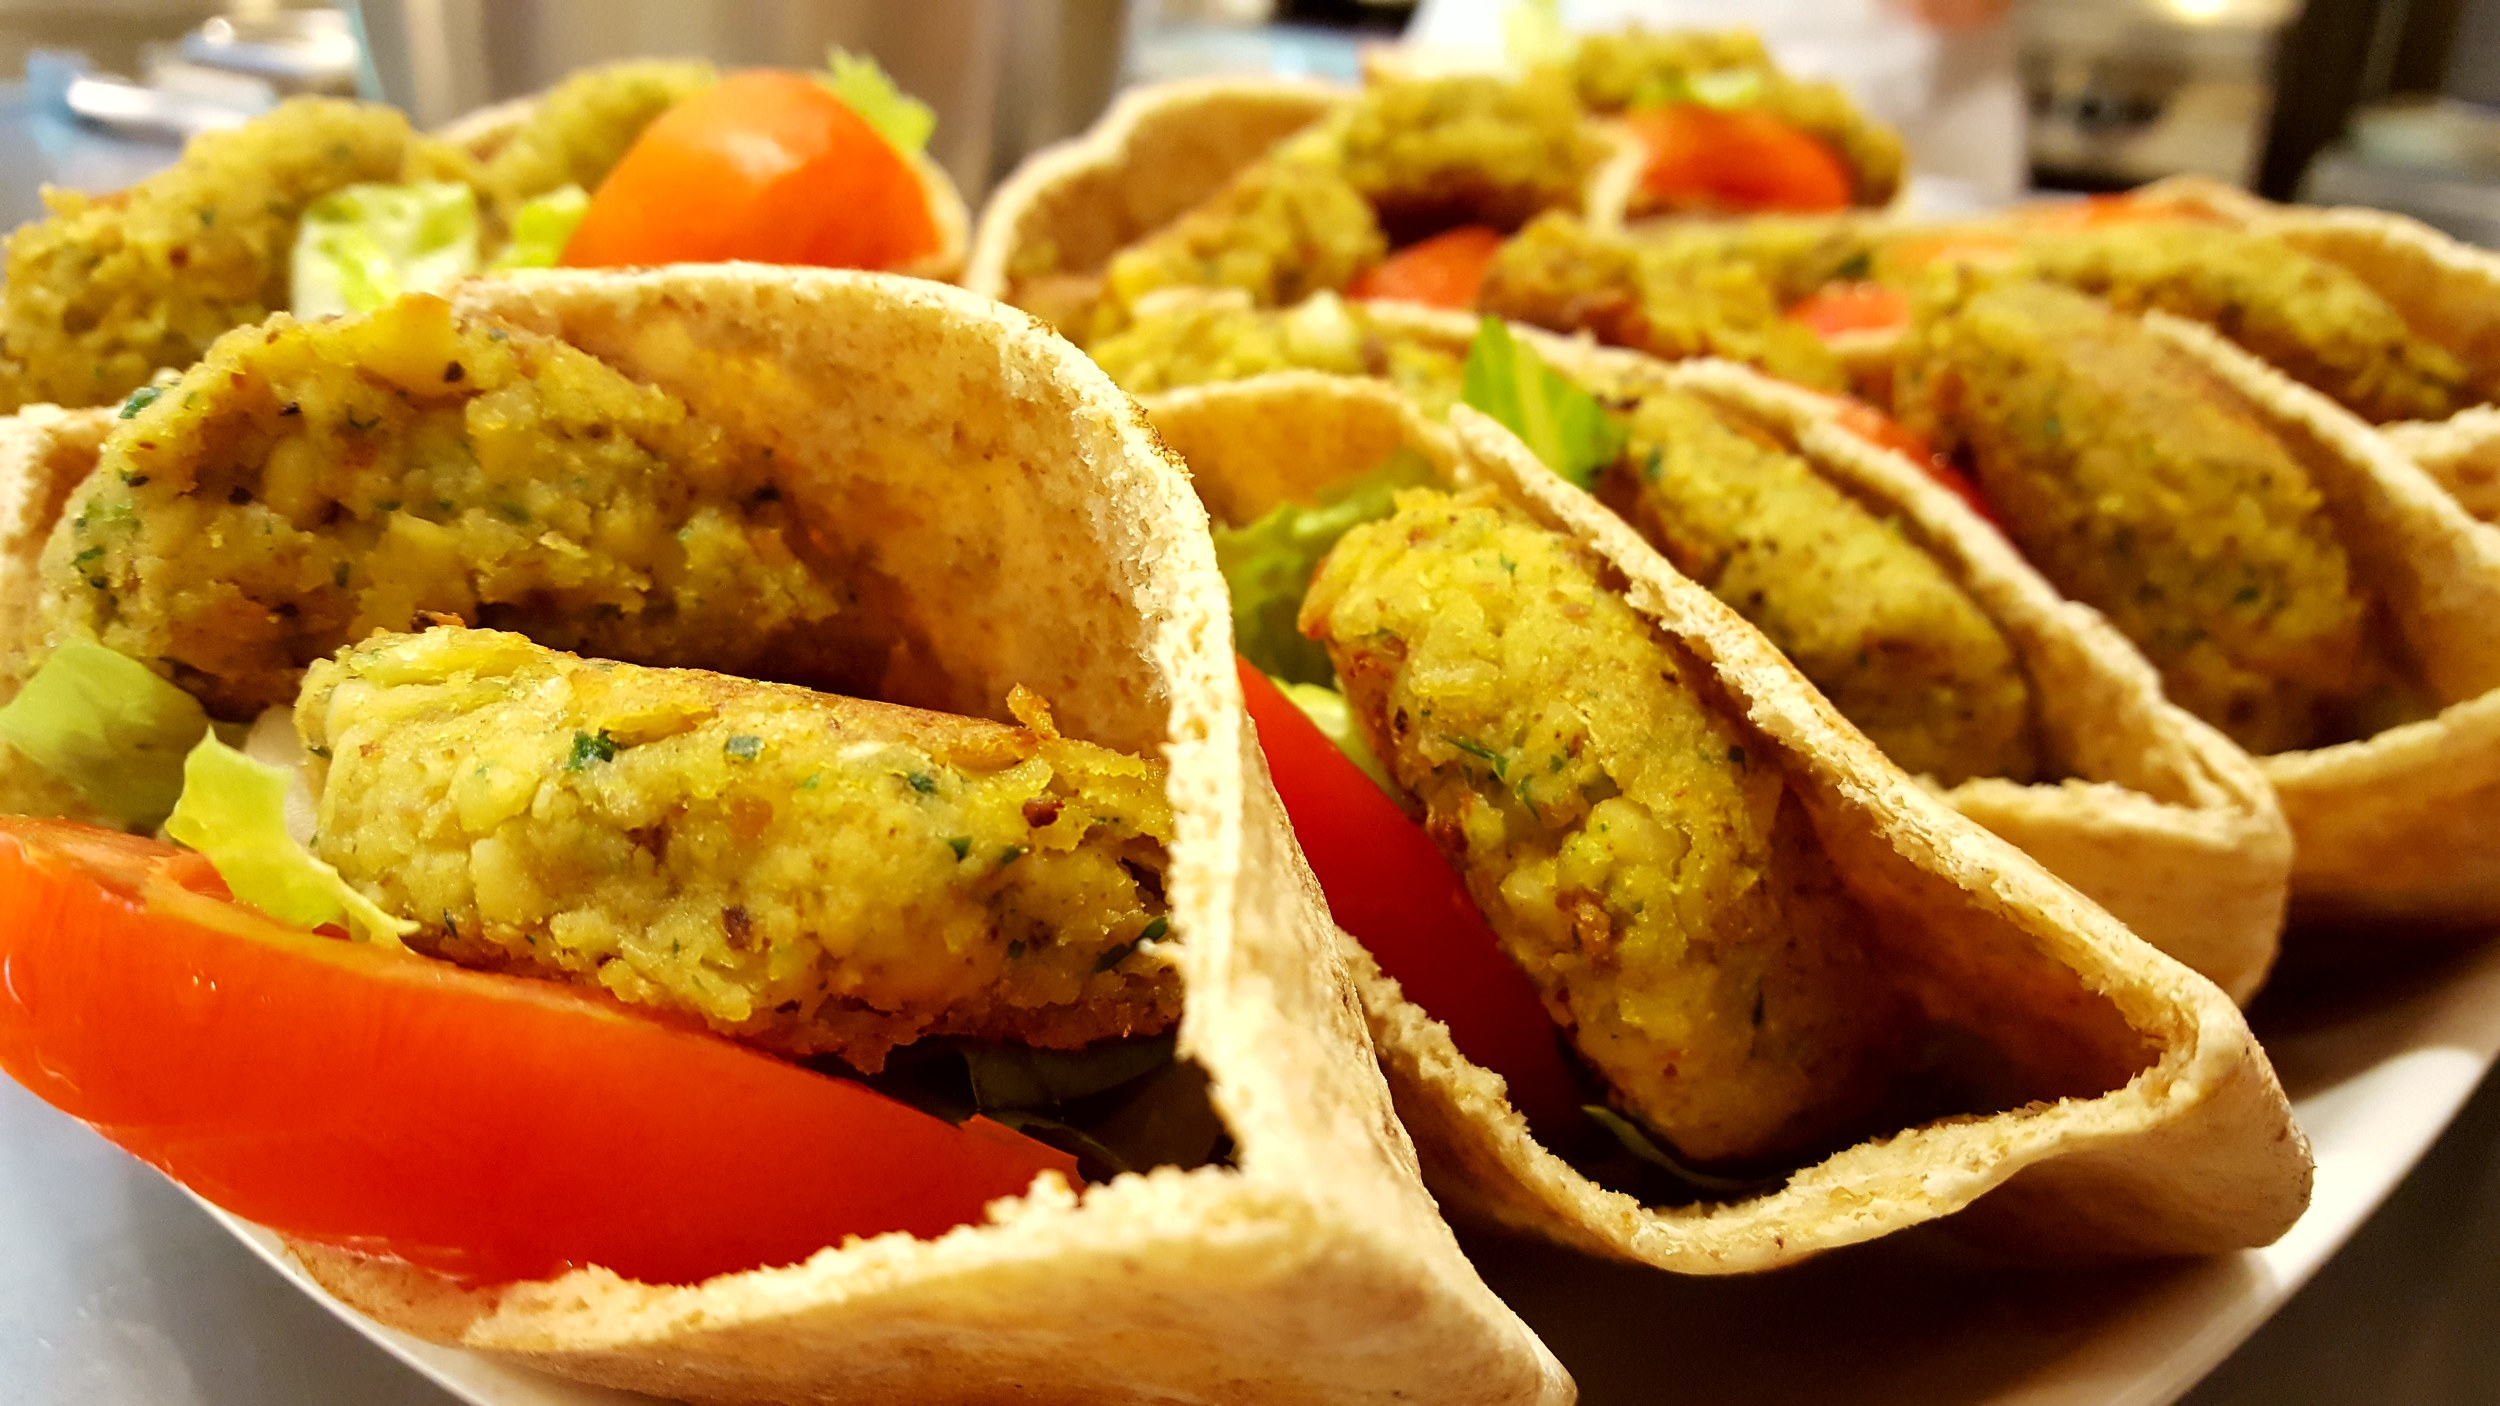 Each pocket is full of vegetarian goodness!